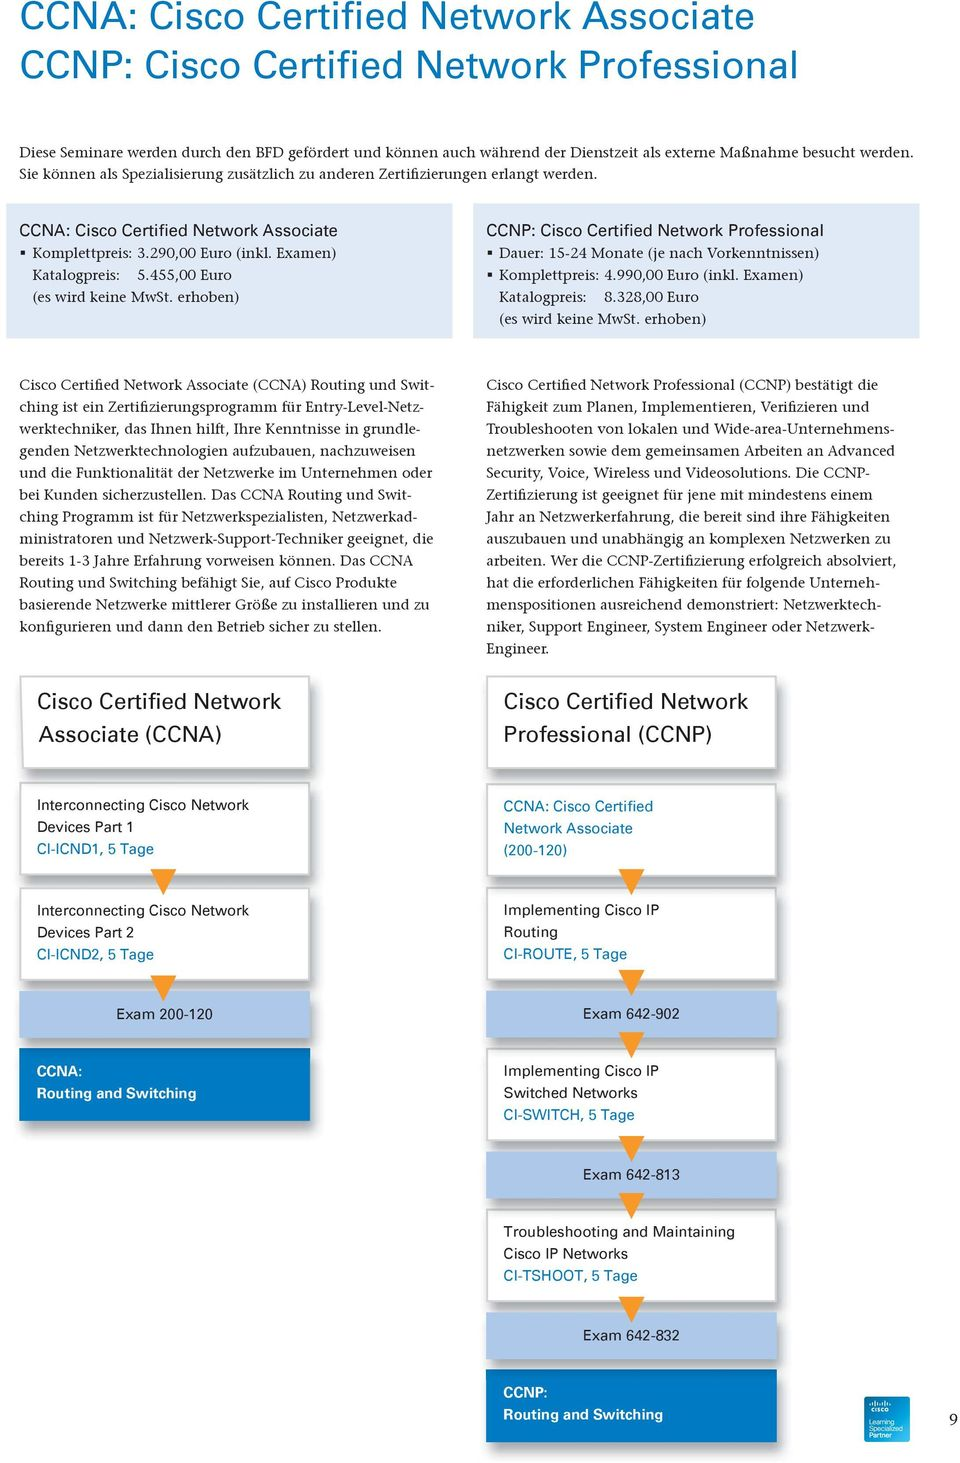 Associate (200-120) Interconnecting Cisco Network Devices Part 2 CI-ICND2, 5 Tage Implementing Cisco IP Routing CI-ROUTE, 5 Tage Exam 200-120 Exam 642-902 CCNA: Routing and